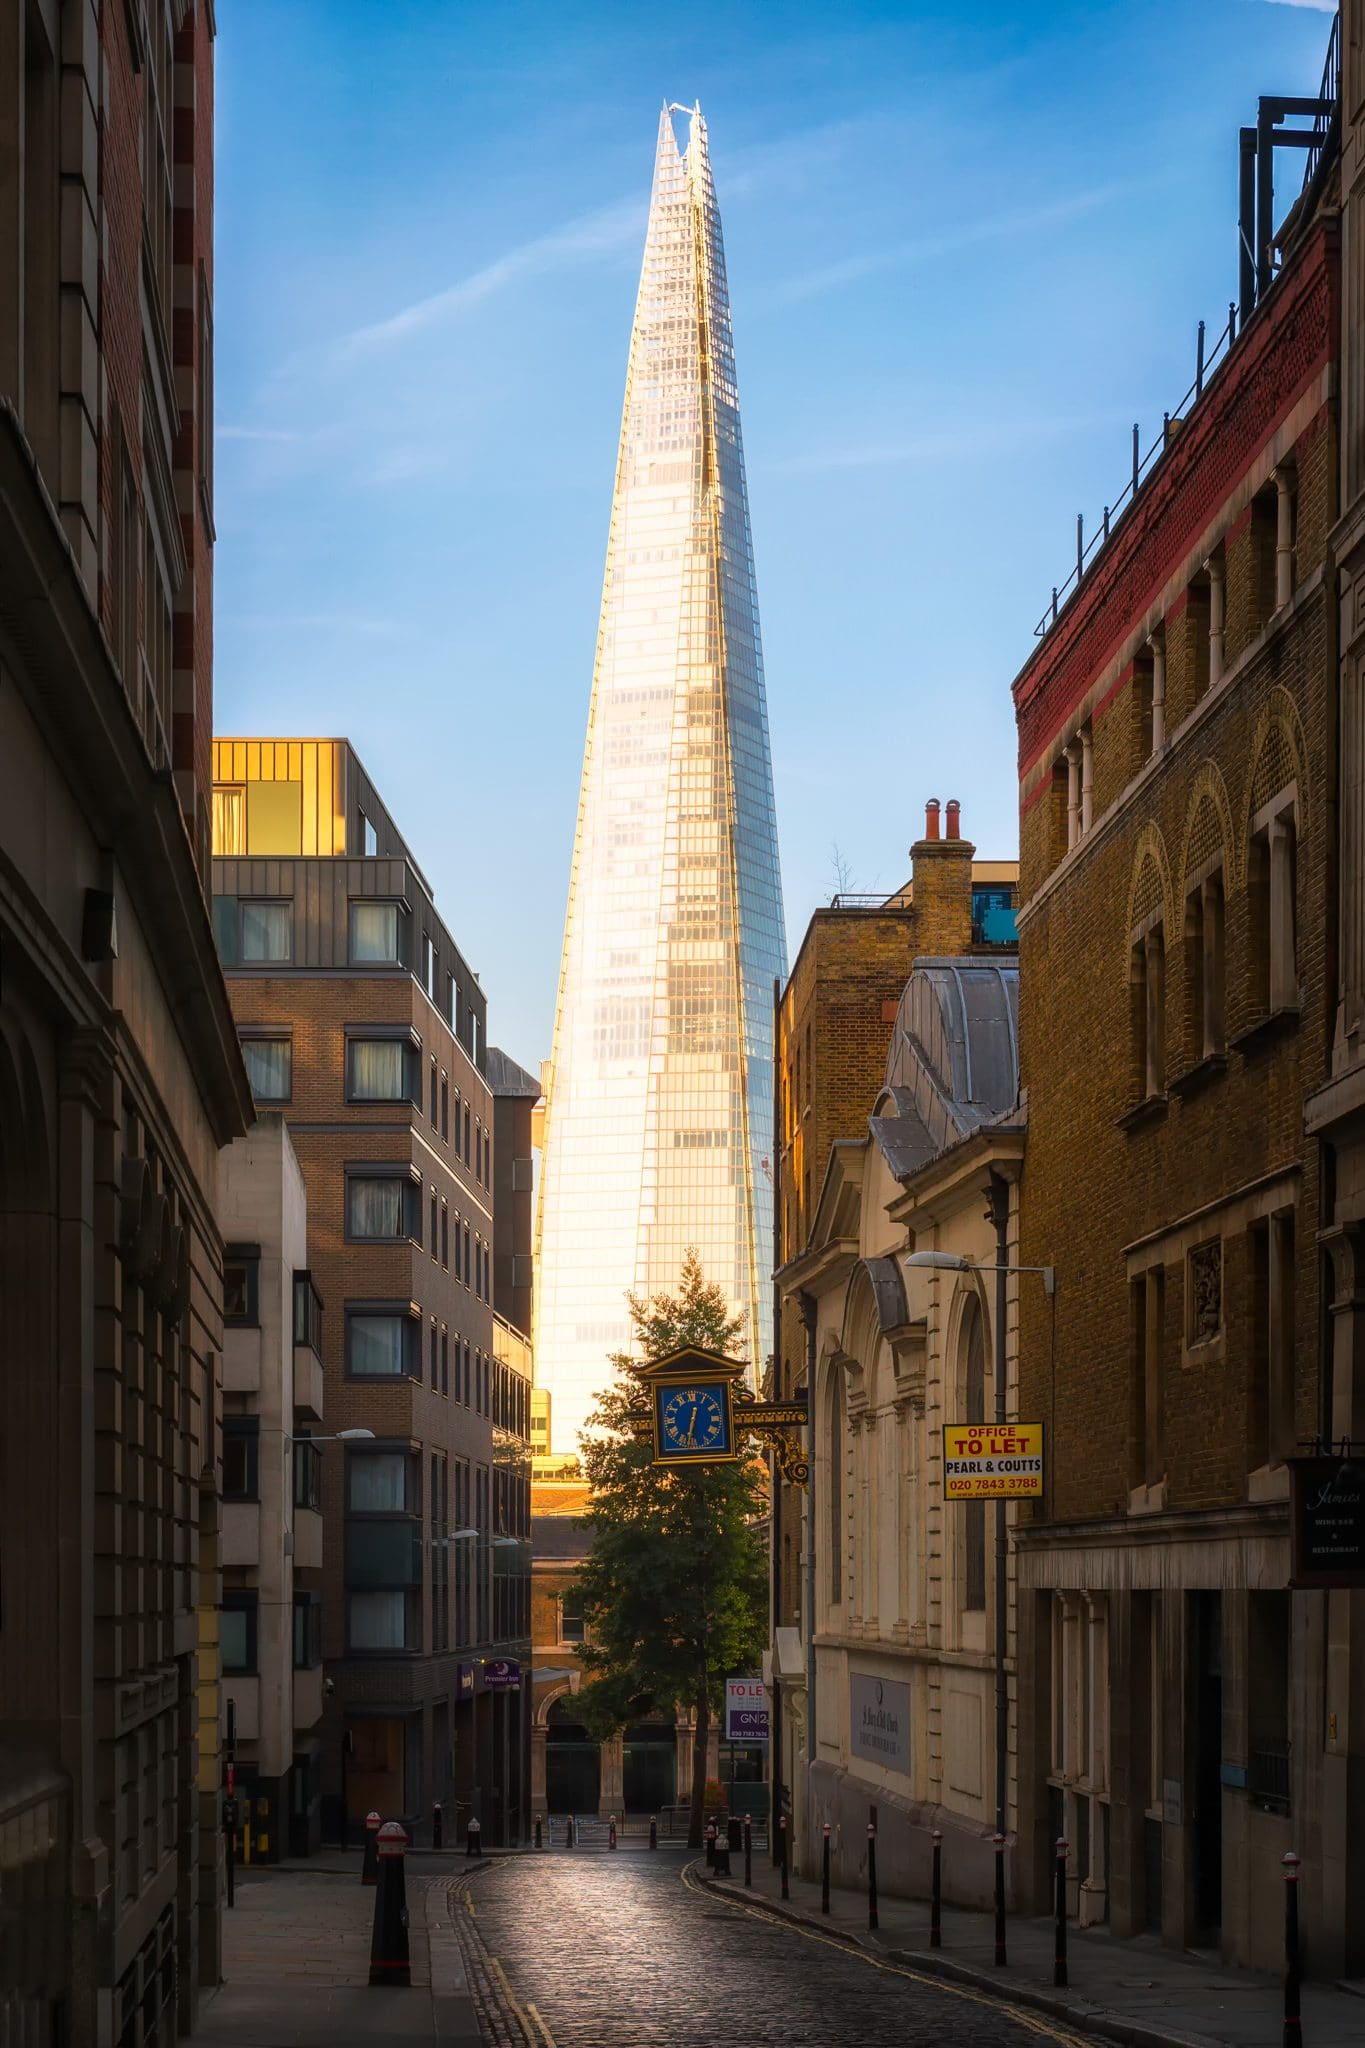 The Shard on a sunny day in London, England.